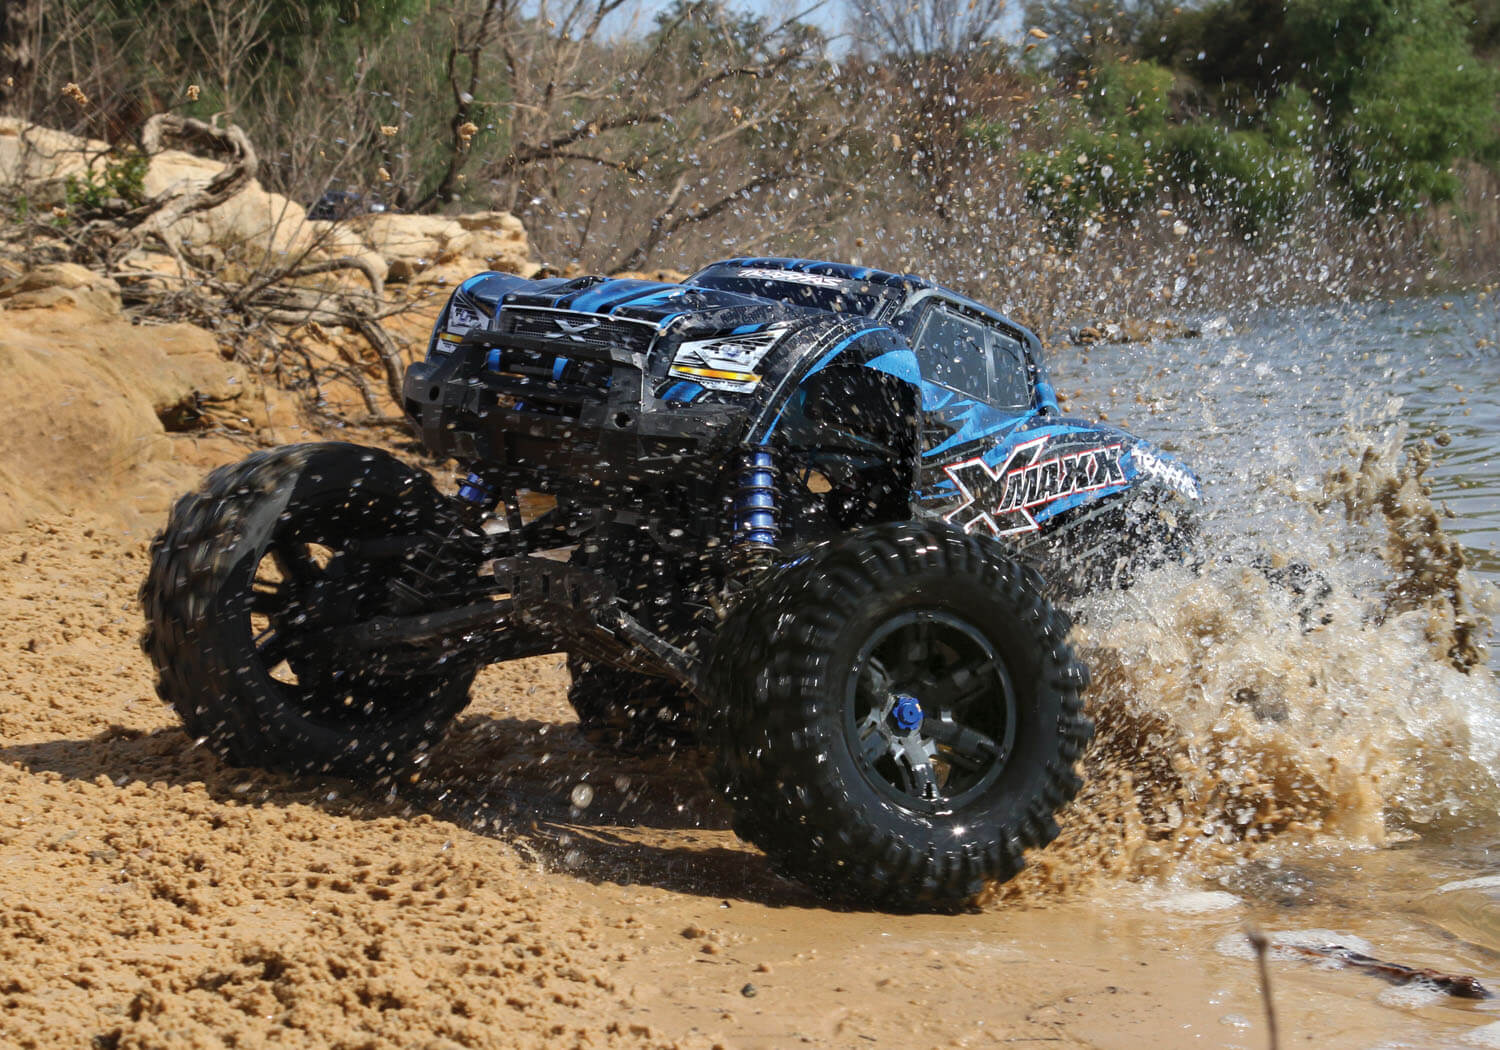 rc monster trucks with 5 Traxxas Trx77076 4 on Cseccbecpro Castle switching regulator P 8345 moreover Sale 20068 furthermore New Bright 1 43 Remote Control Monster Jam Assorted likewise 430164201886194676 together with LicensedKenworthDumpTruckElectricRTRRC.